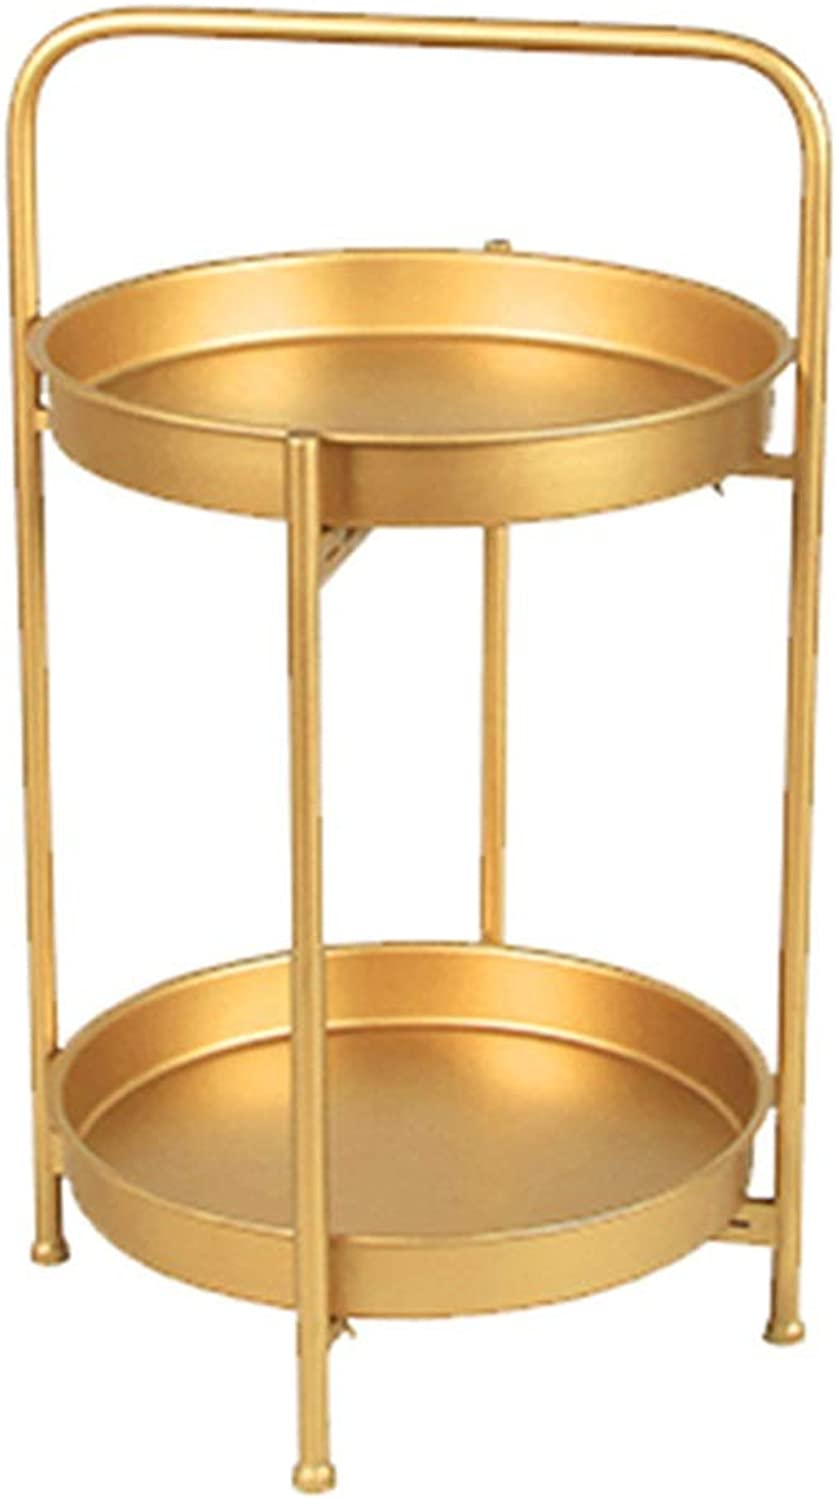 Coffee Table Wrought Iron Double Small Coffee Table Living Room Sofa Side Corner A Few Bedroom Small Round Table Gift (color   gold, Size   40  40  67CM)